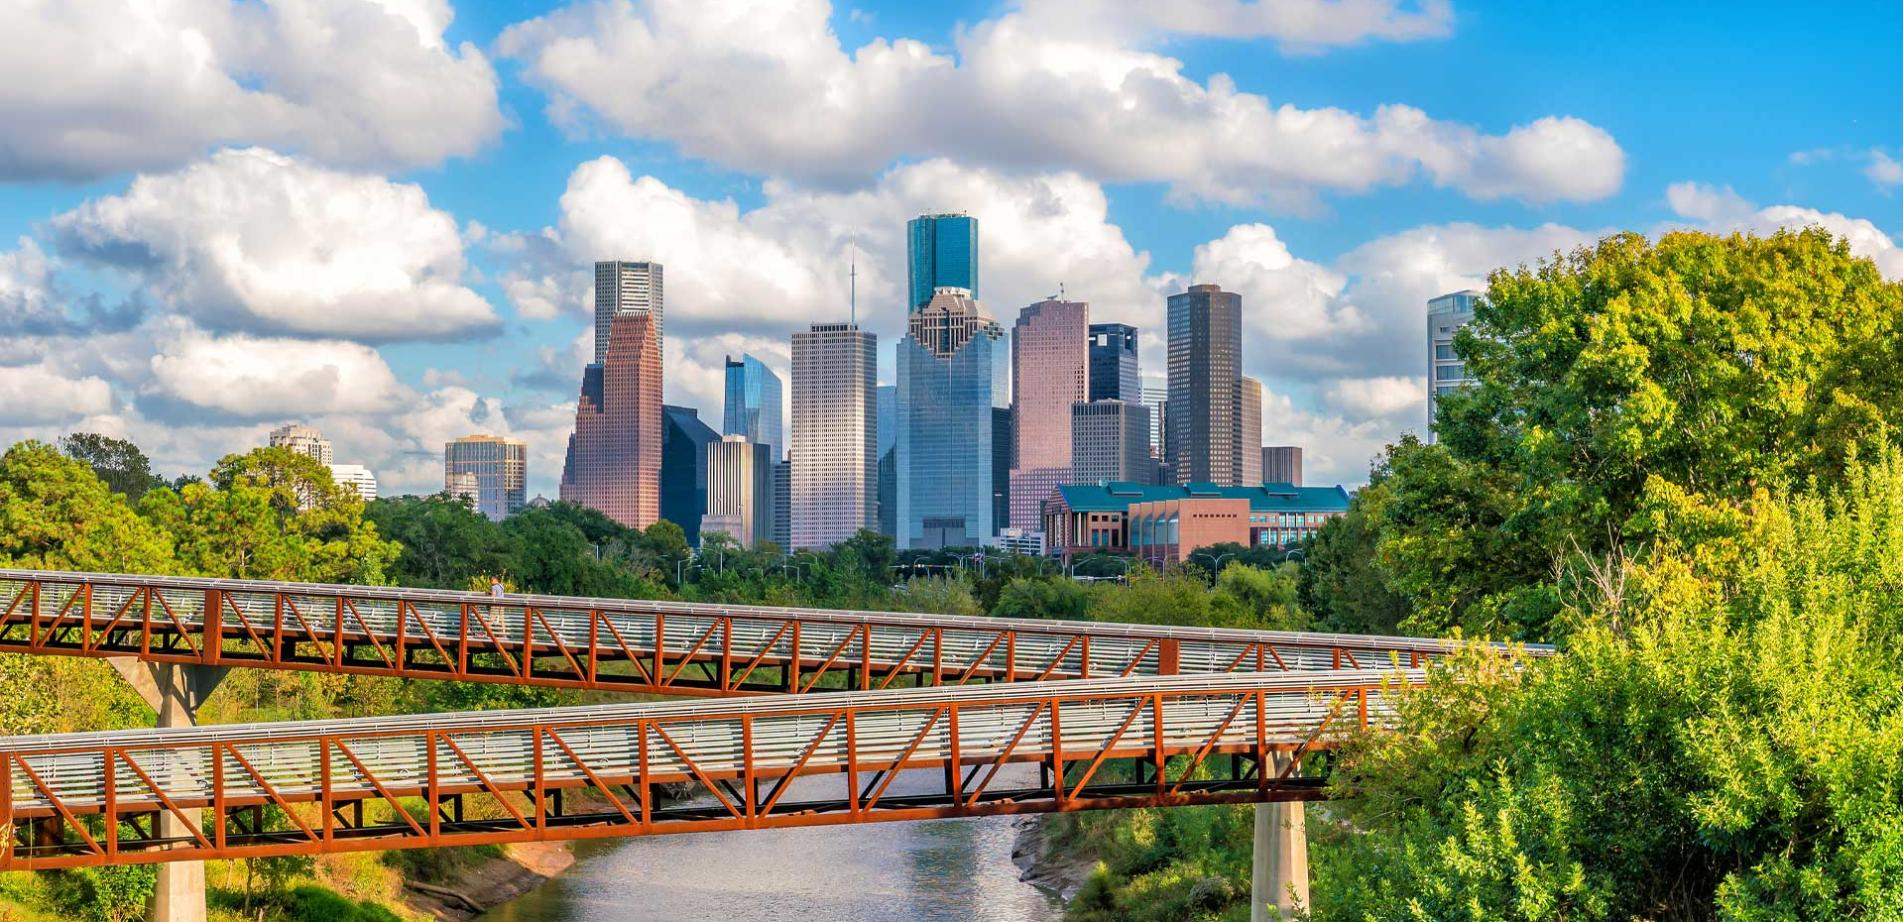 Downtown Houston Skyline over Bayou